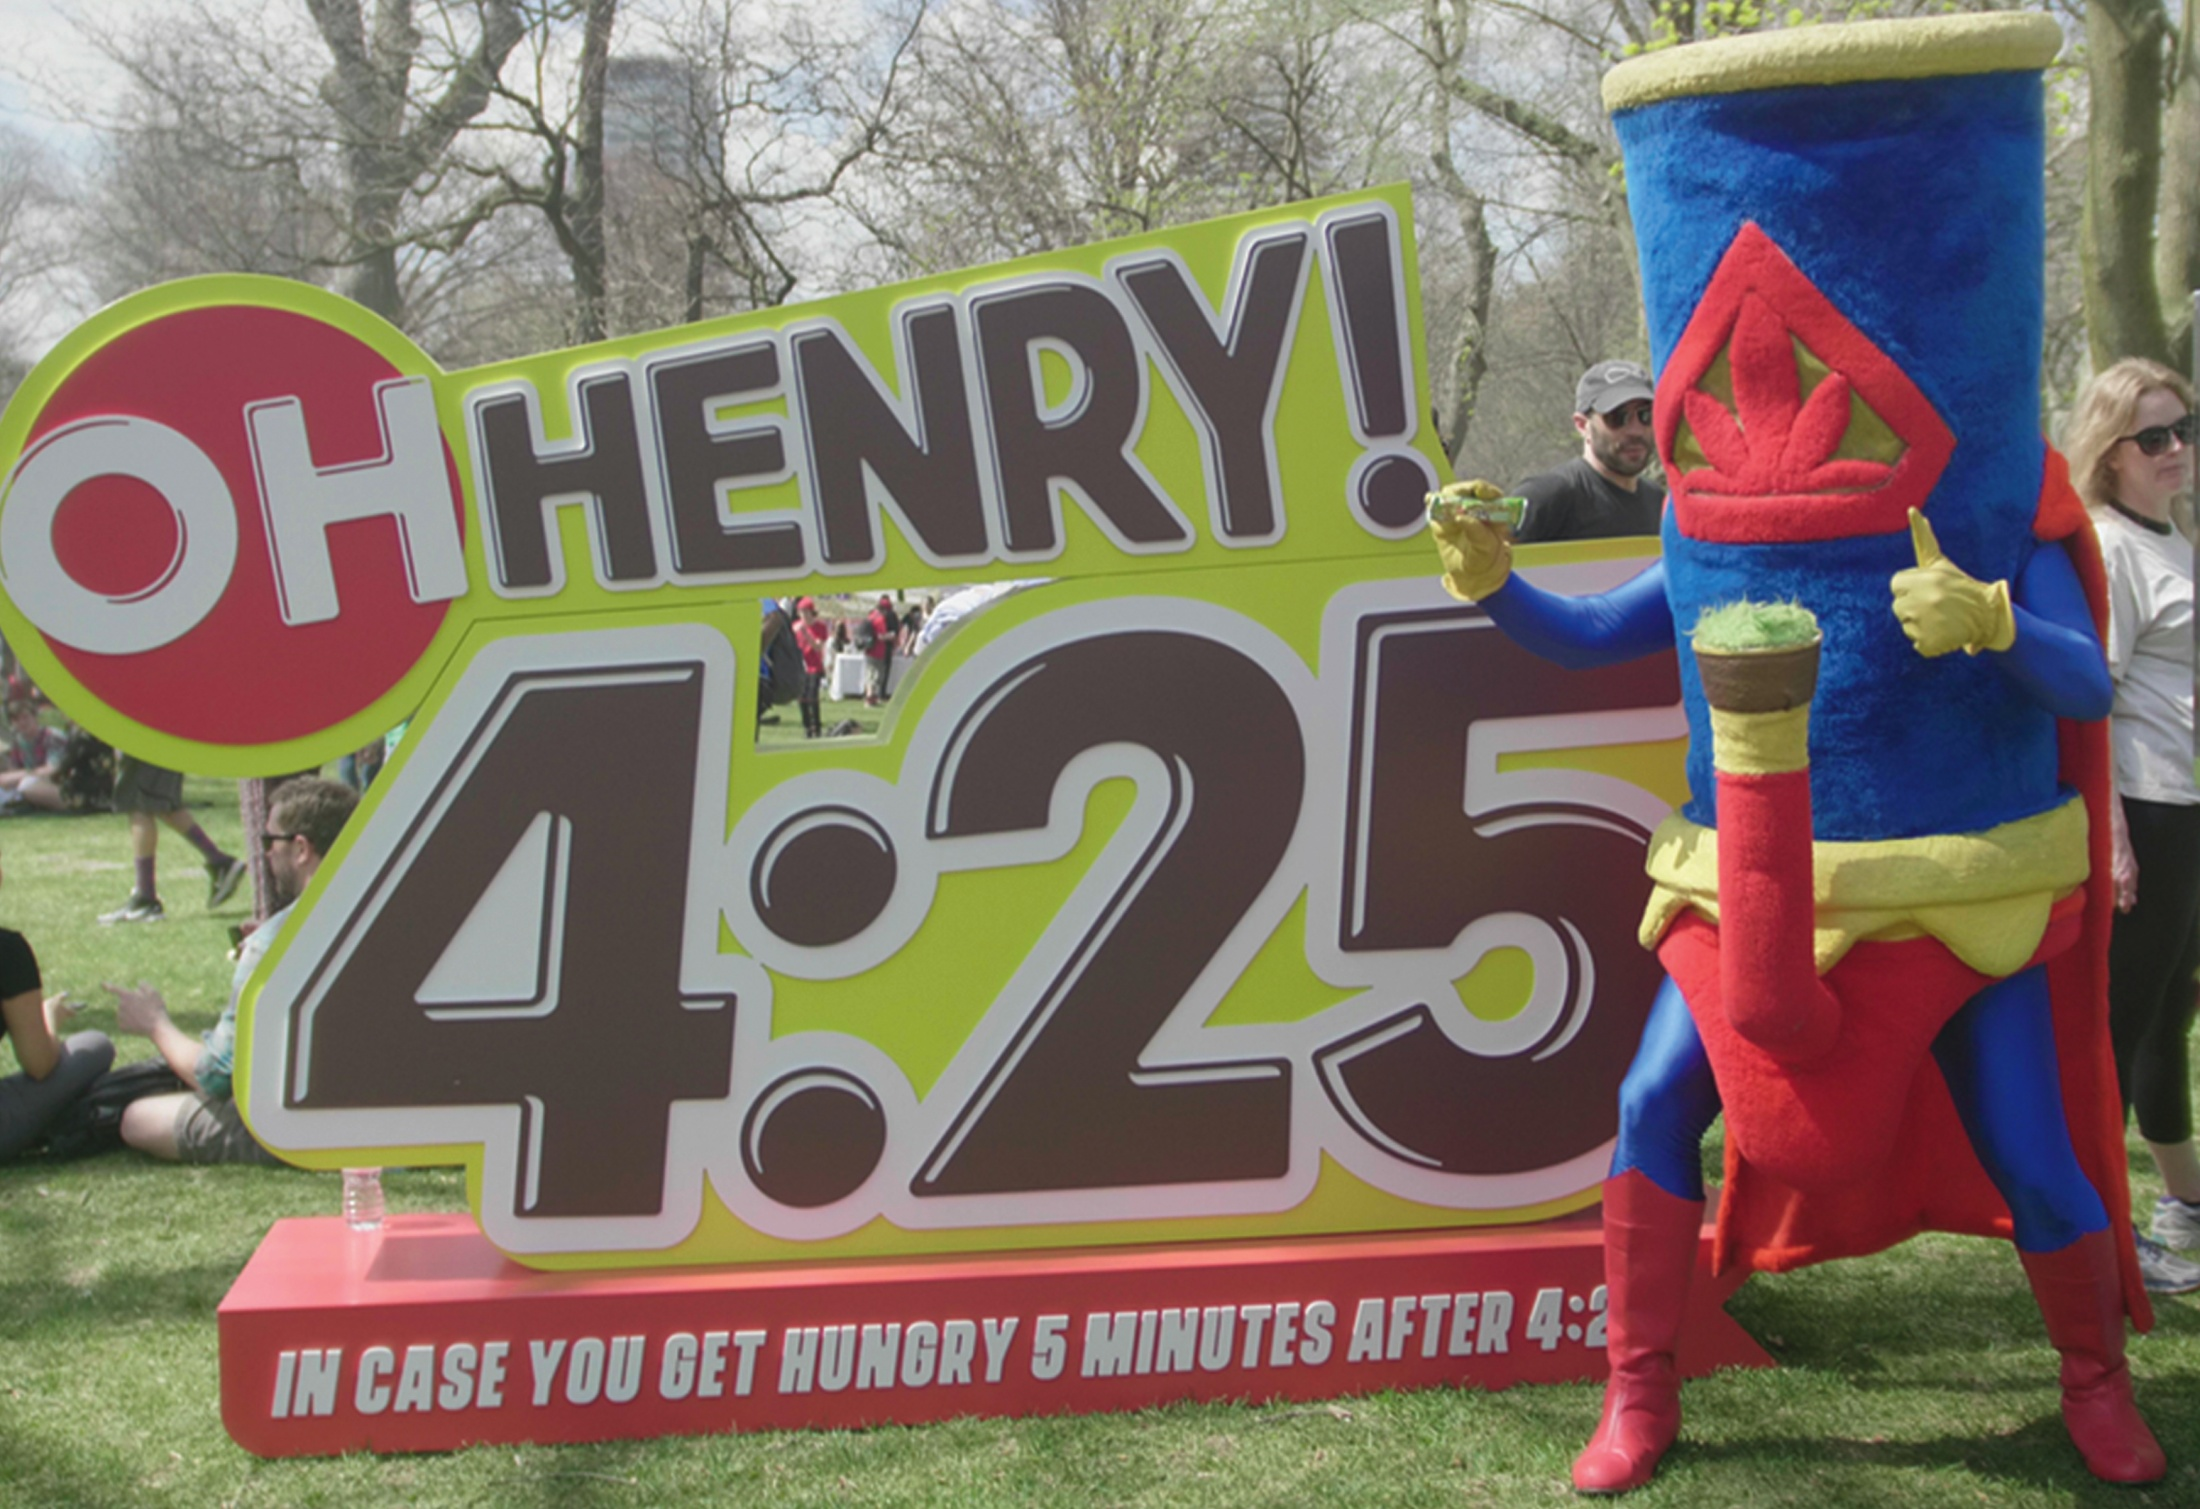 Thumbnail for Oh Henry! 4:25